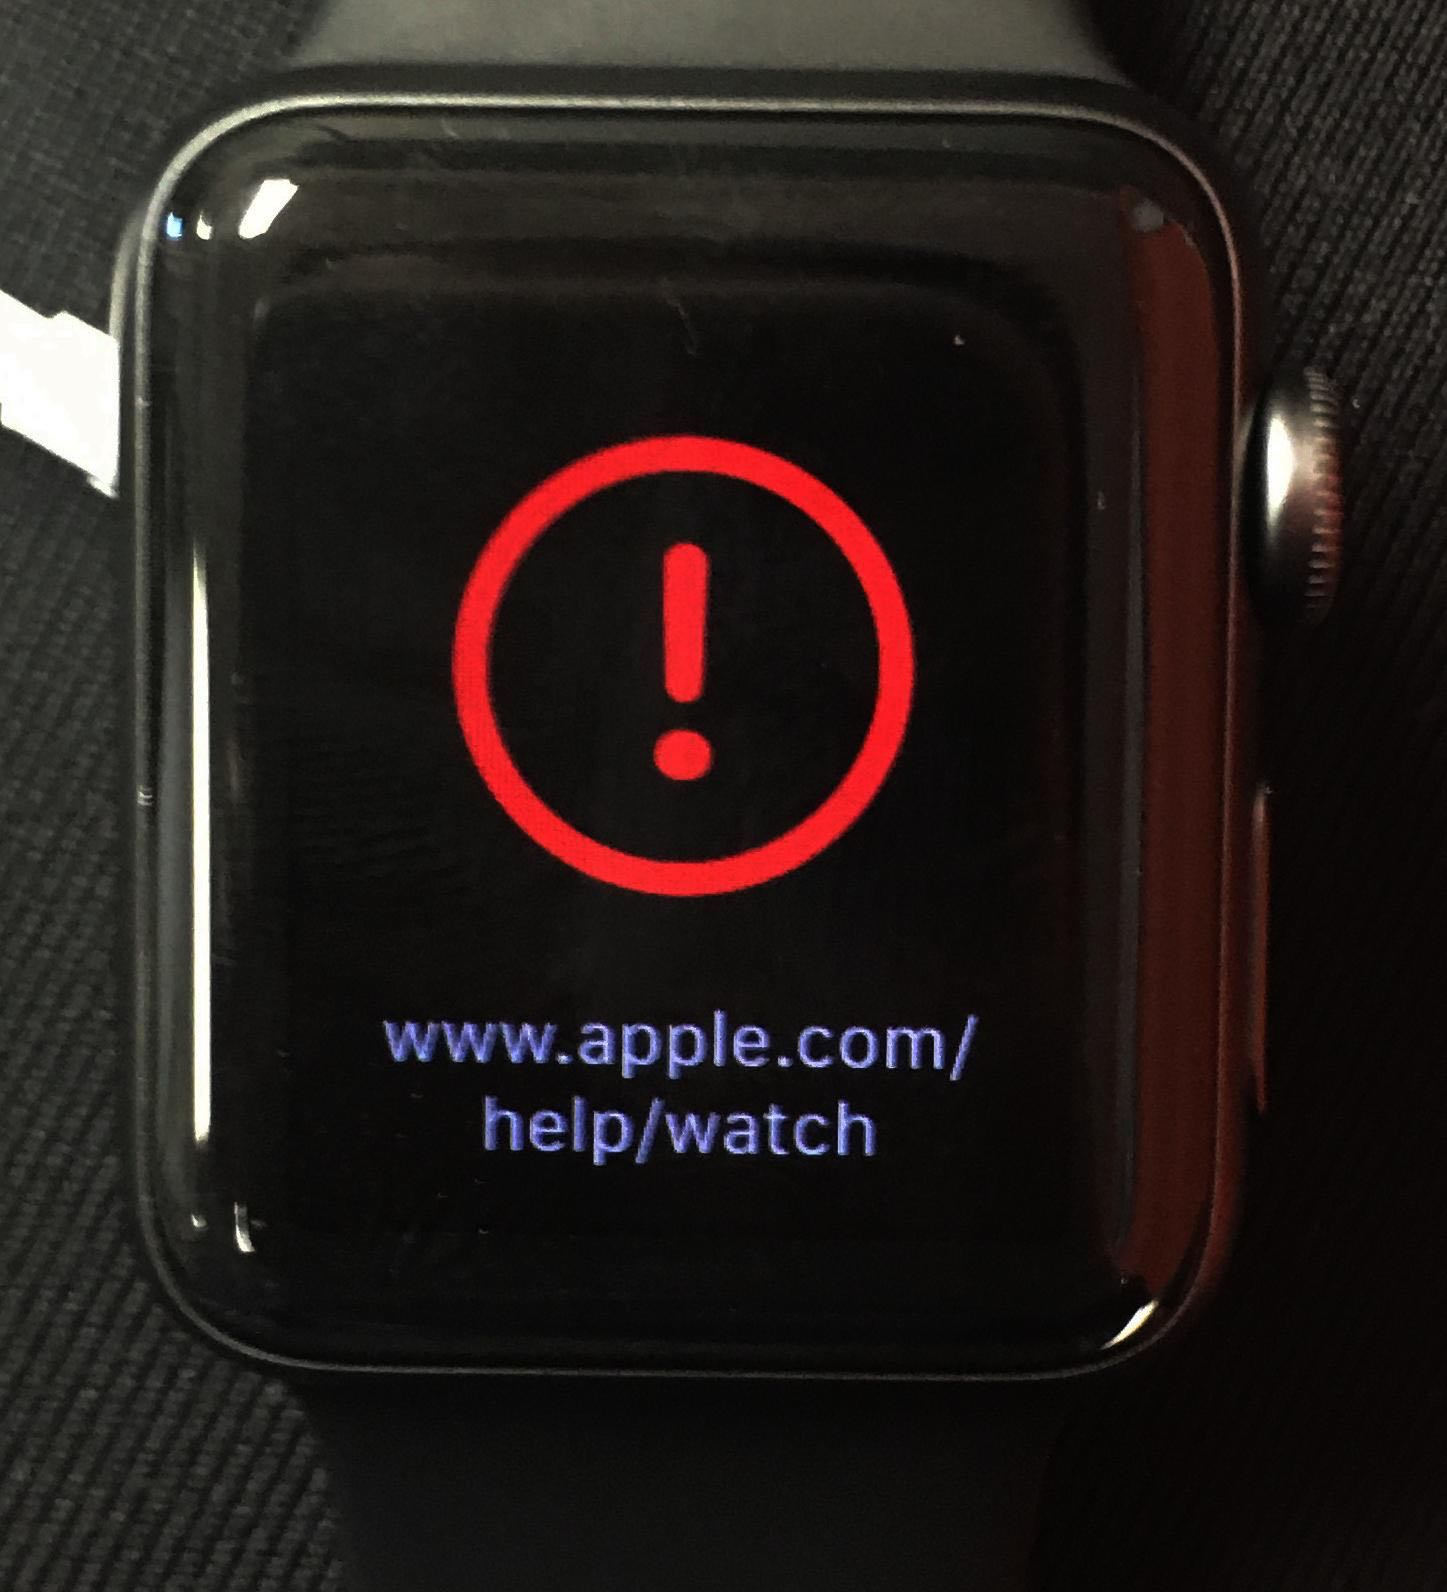 Apple watch bricked red exclamation solution activation lock remove tools icloud bypass